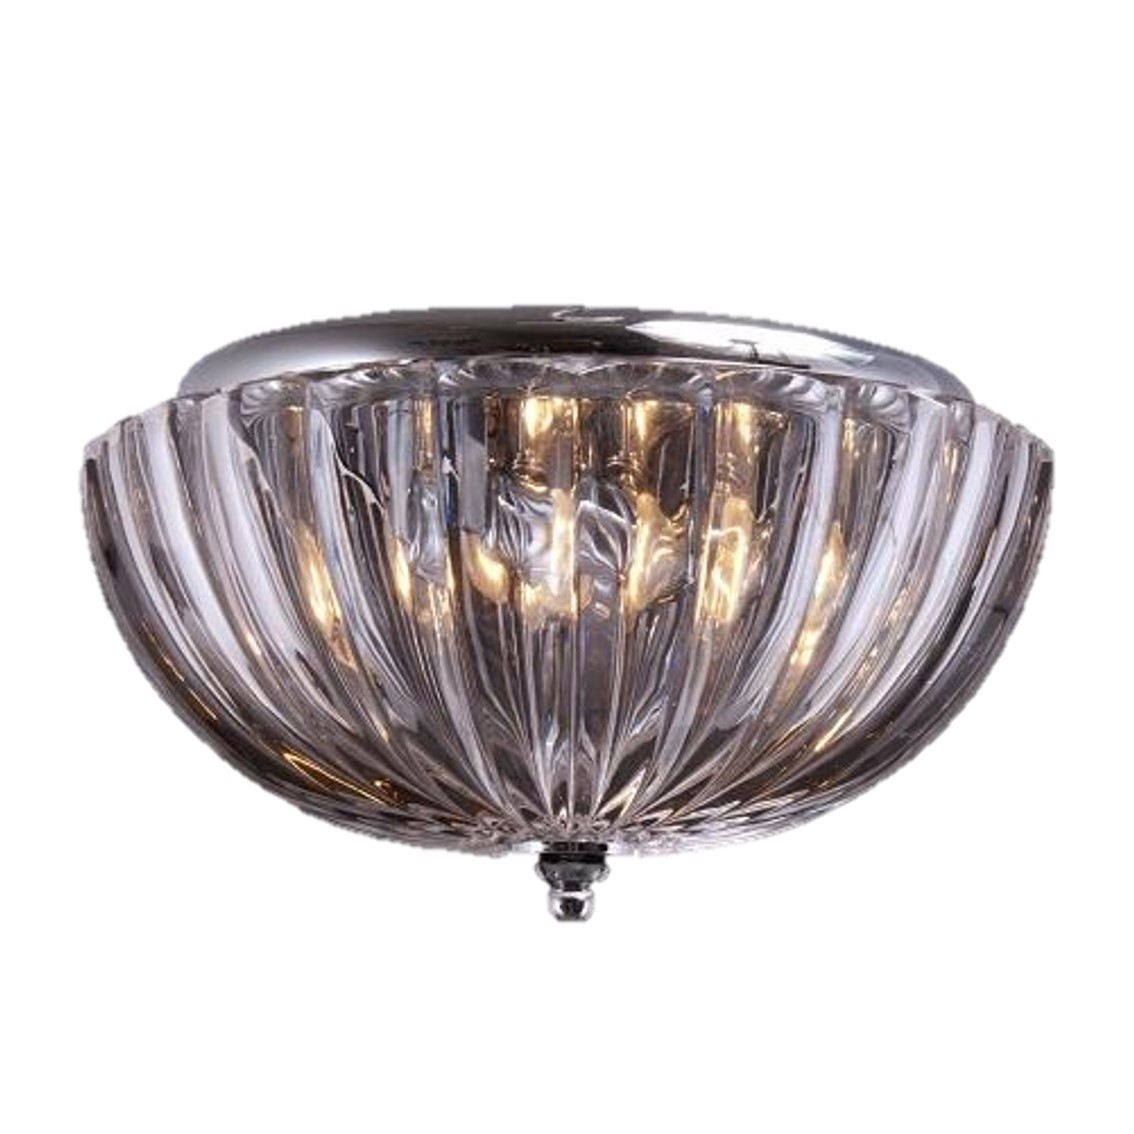 TTSC630161-30CM-Umbrella Crystal/ Brown Ceiling